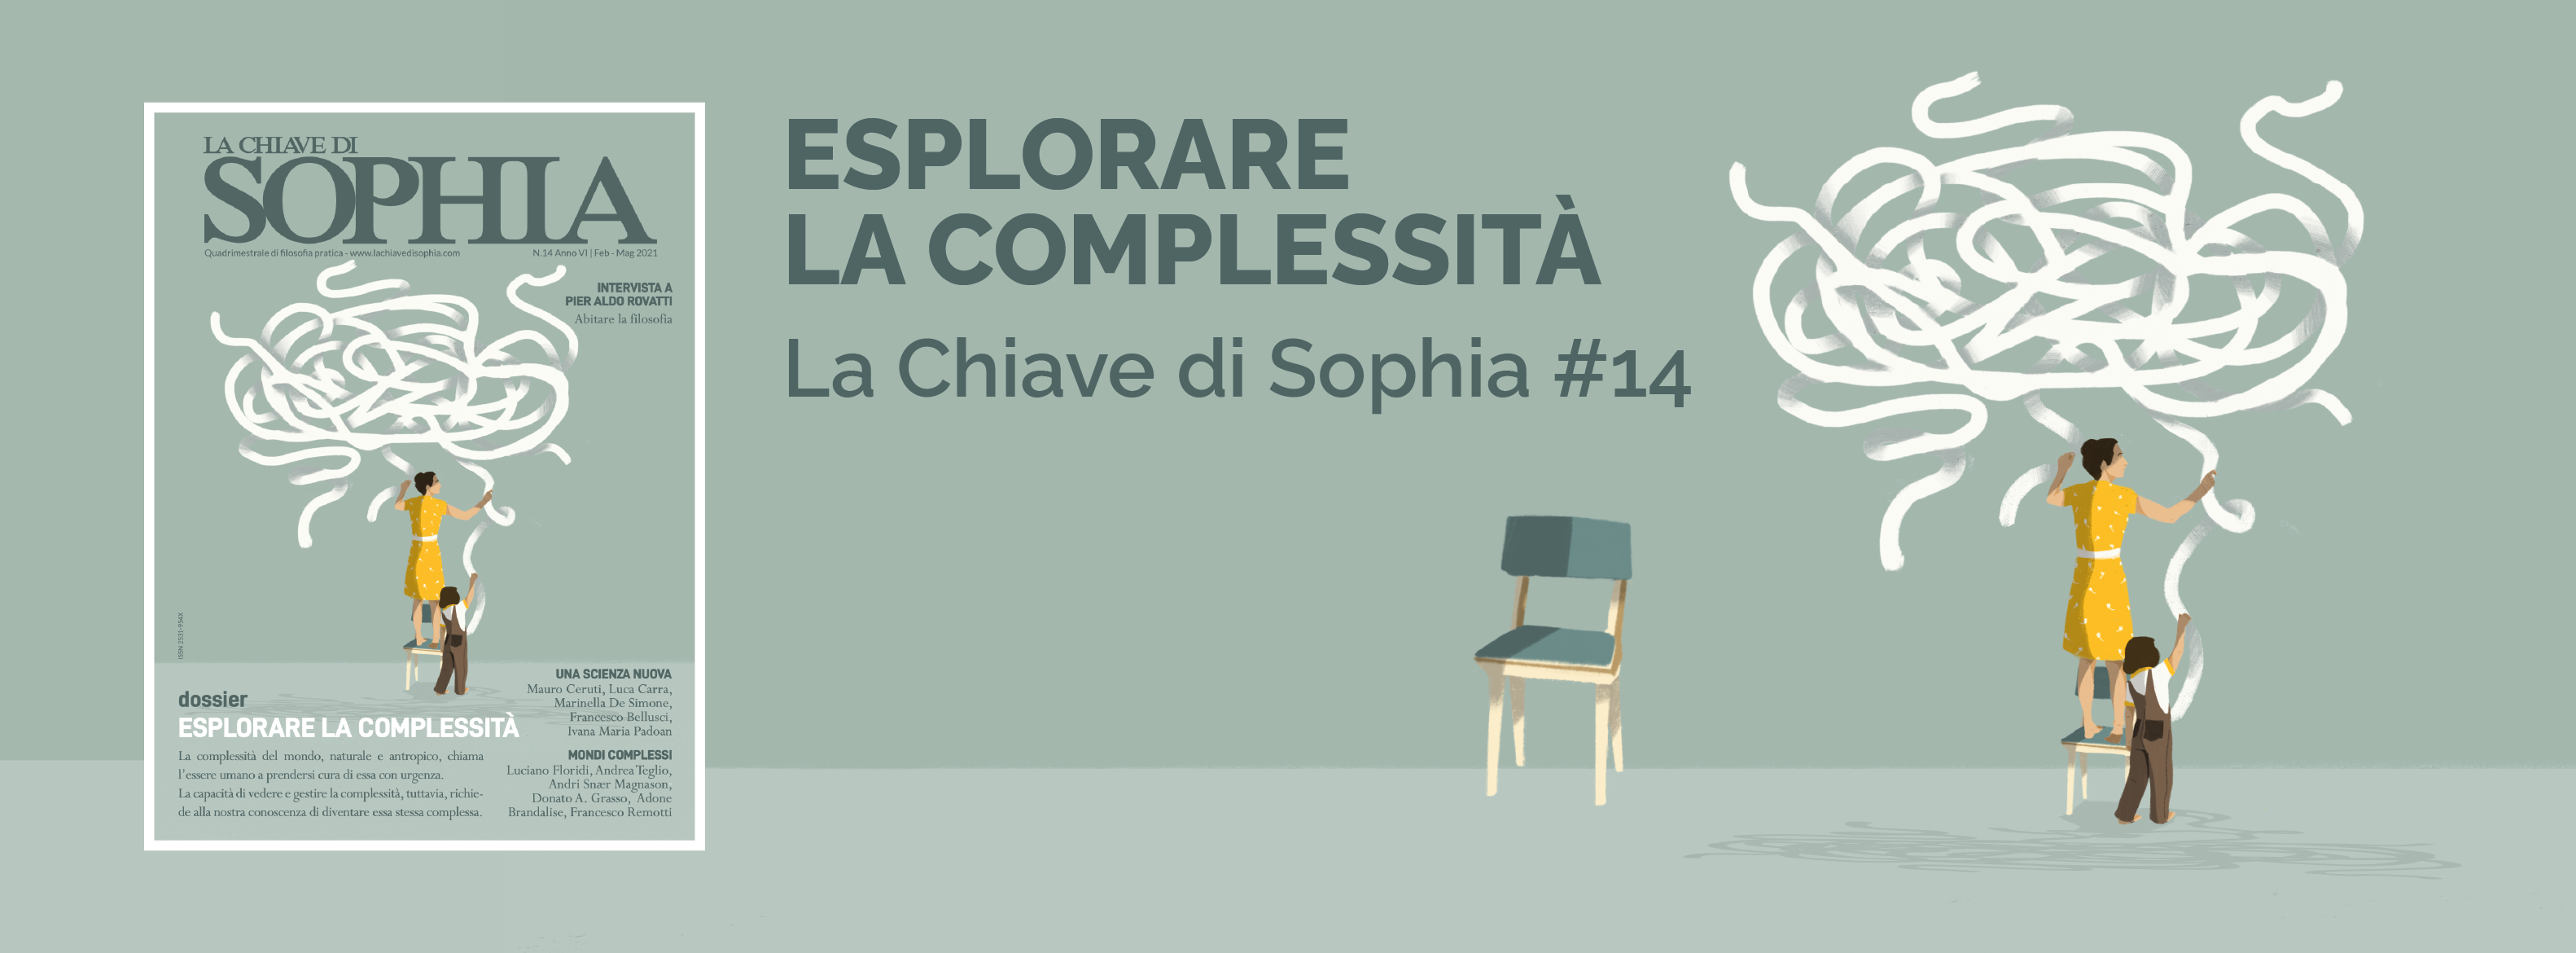 chiave-14_complessita-02